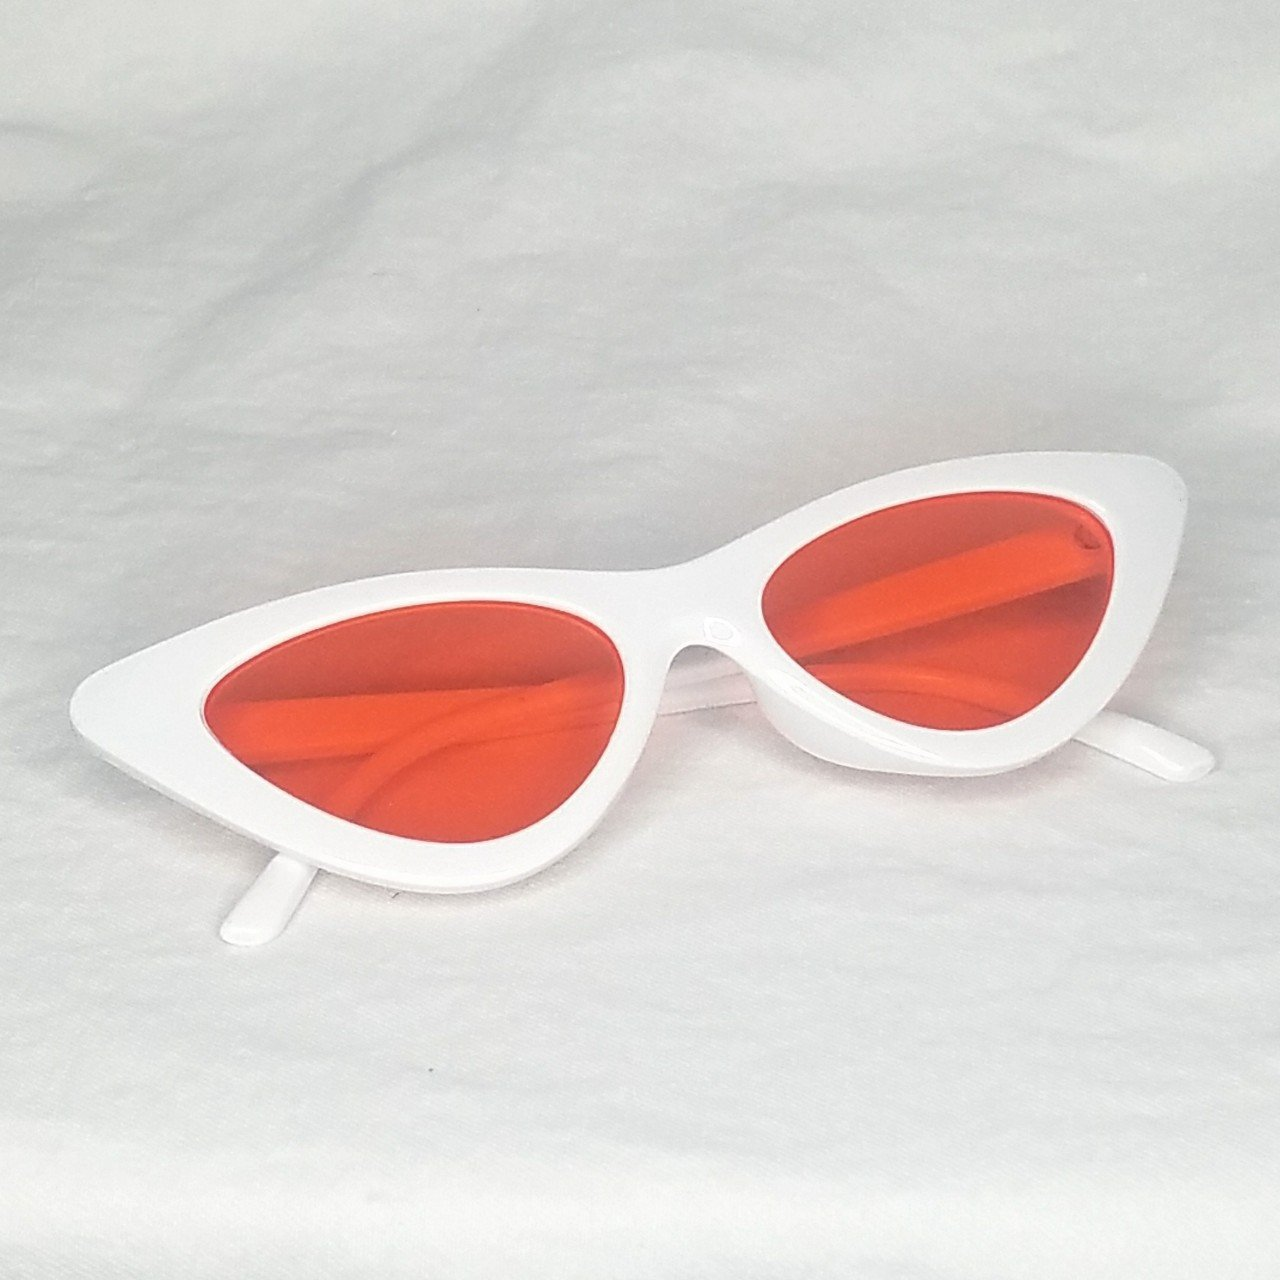 1b510ad4a51 Vintage style slim cat eye sunglasses. Glossy white w  🍑 UV - Depop